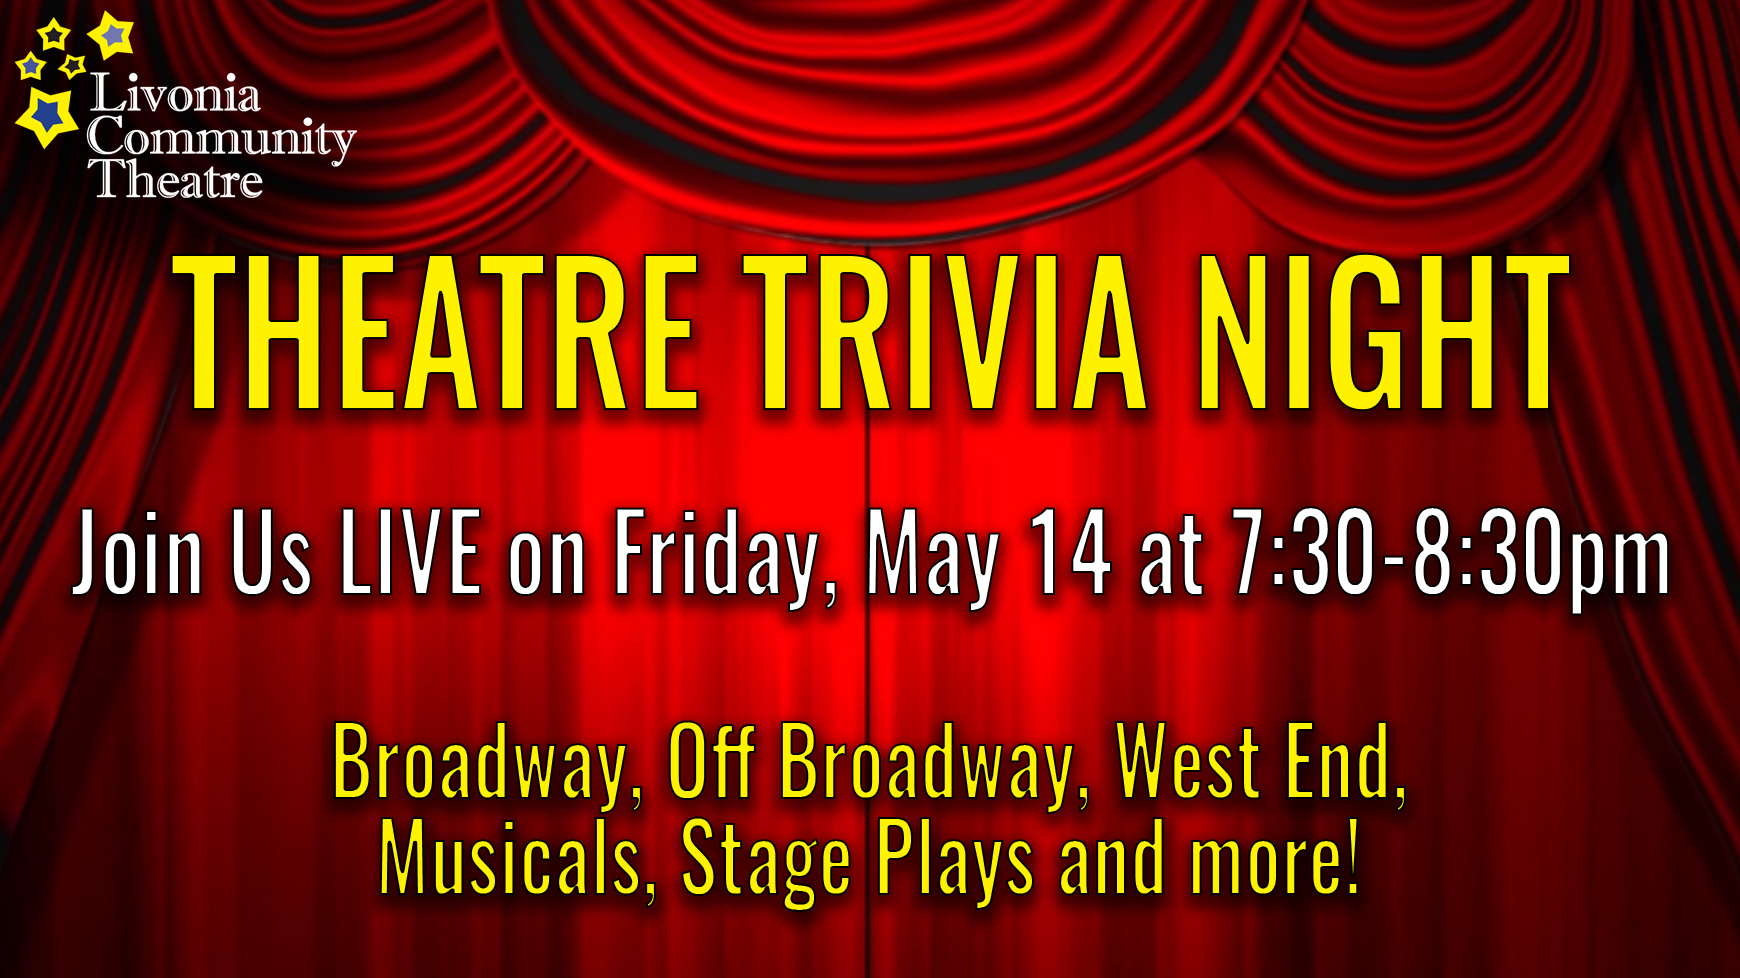 Theatre Trivia Night LIVE